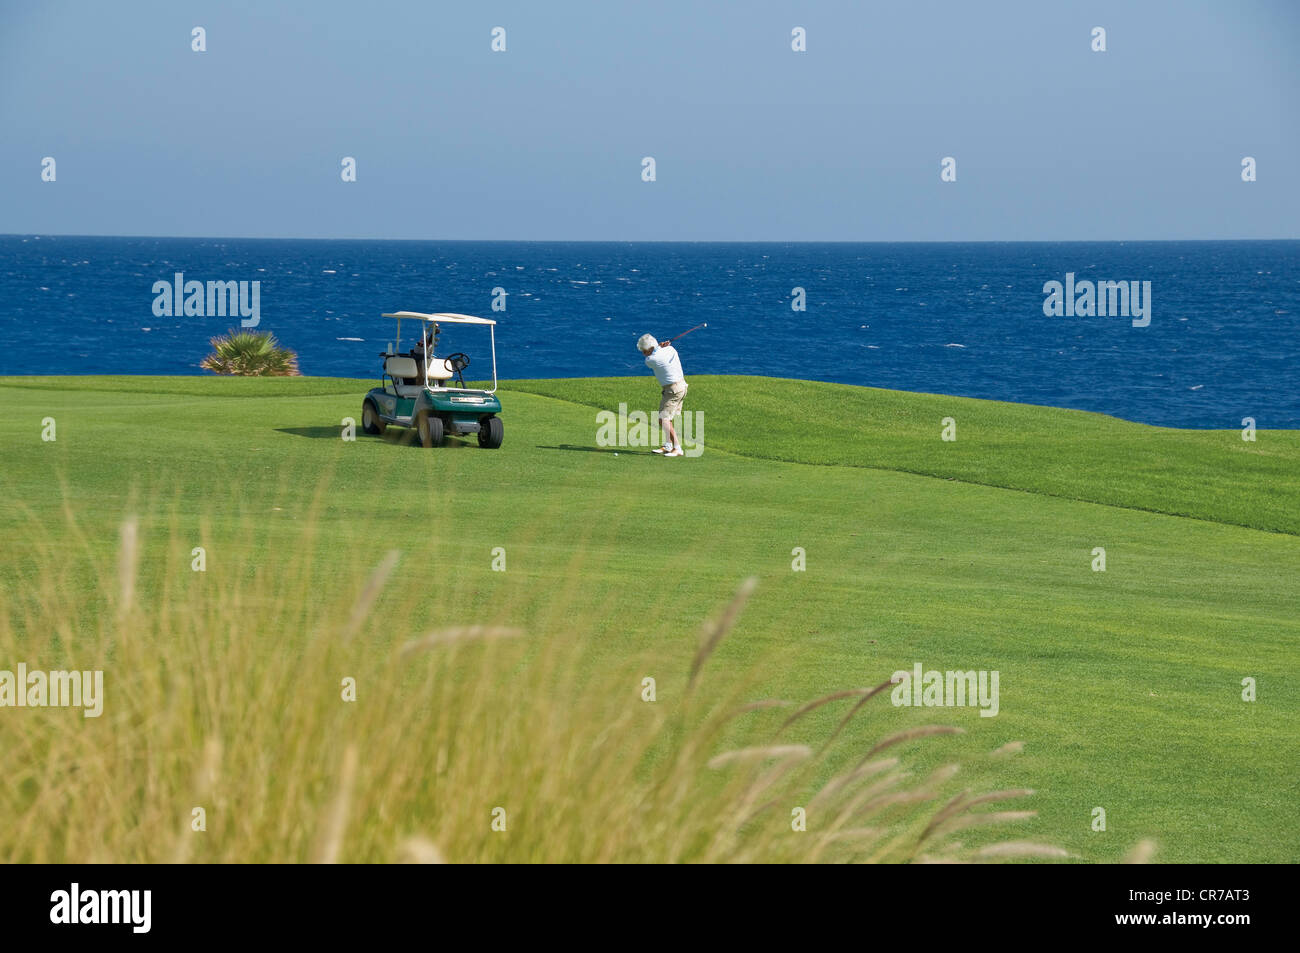 Egypt, Man playing golf on golf course - Stock Image